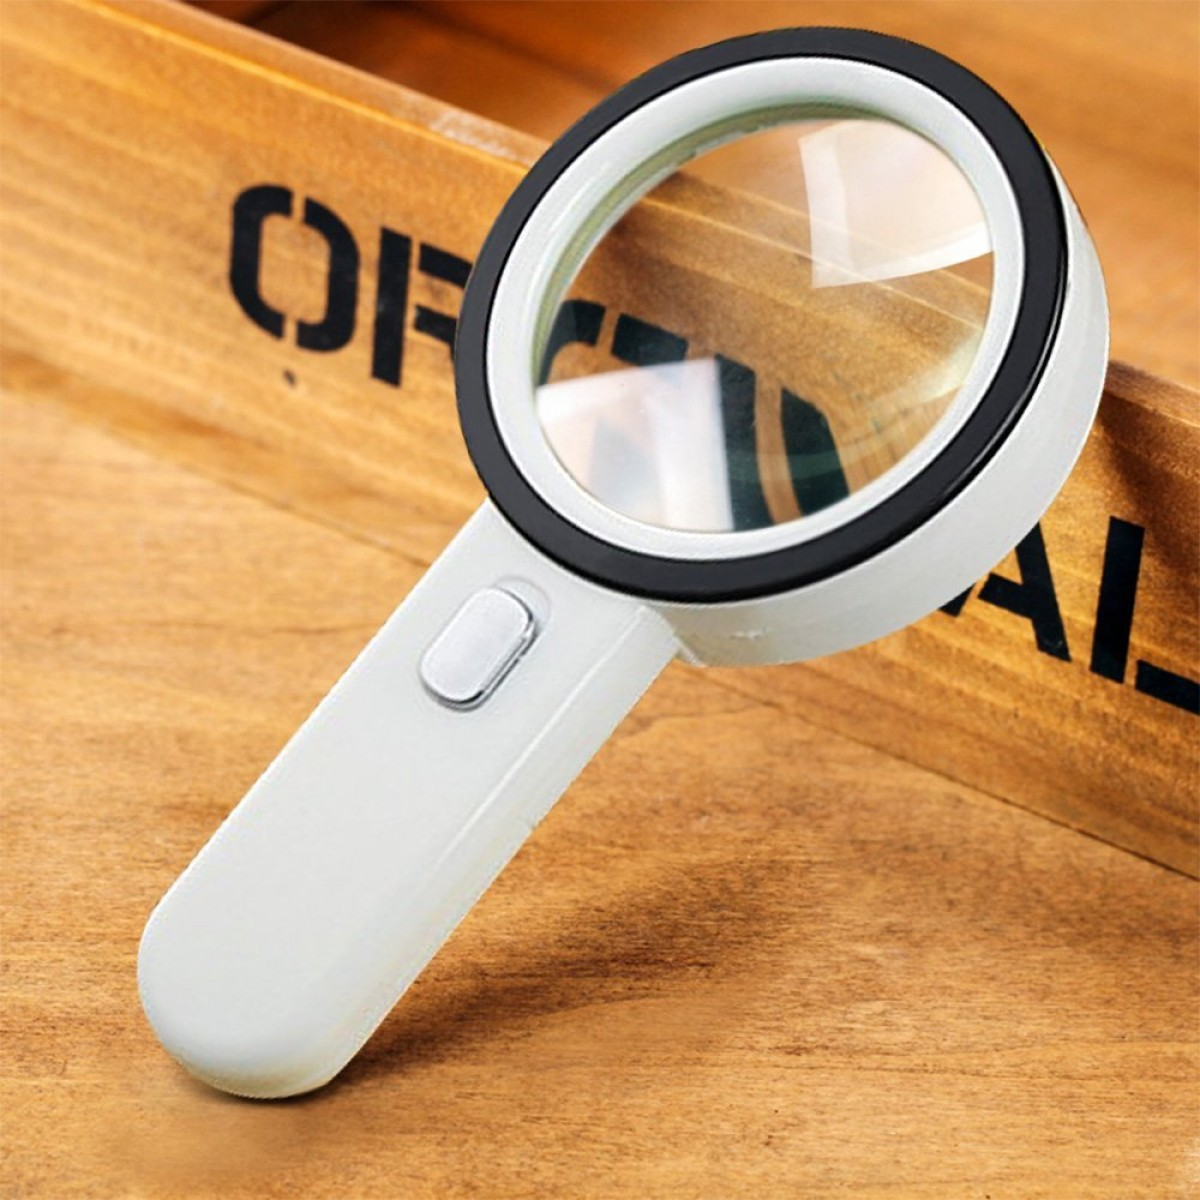 Number One 10x Led Lighted Magnifier Handheld Magnifying Glass Illuminated Lens With 12 Lights 80mm Large Viewing Mirror